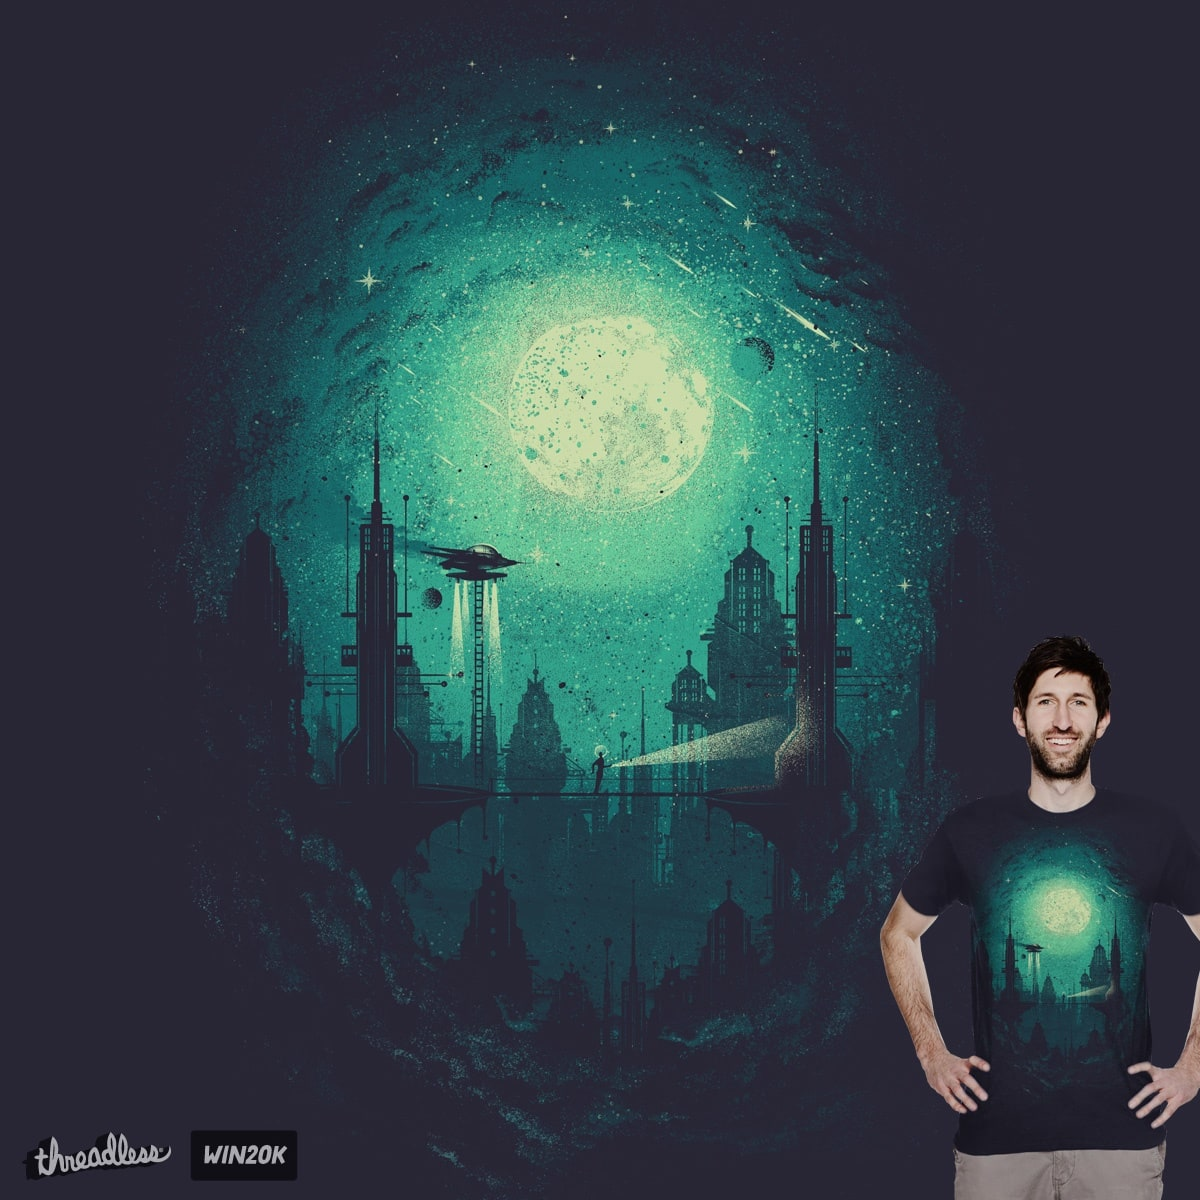 3012 by robsonborges on Threadless